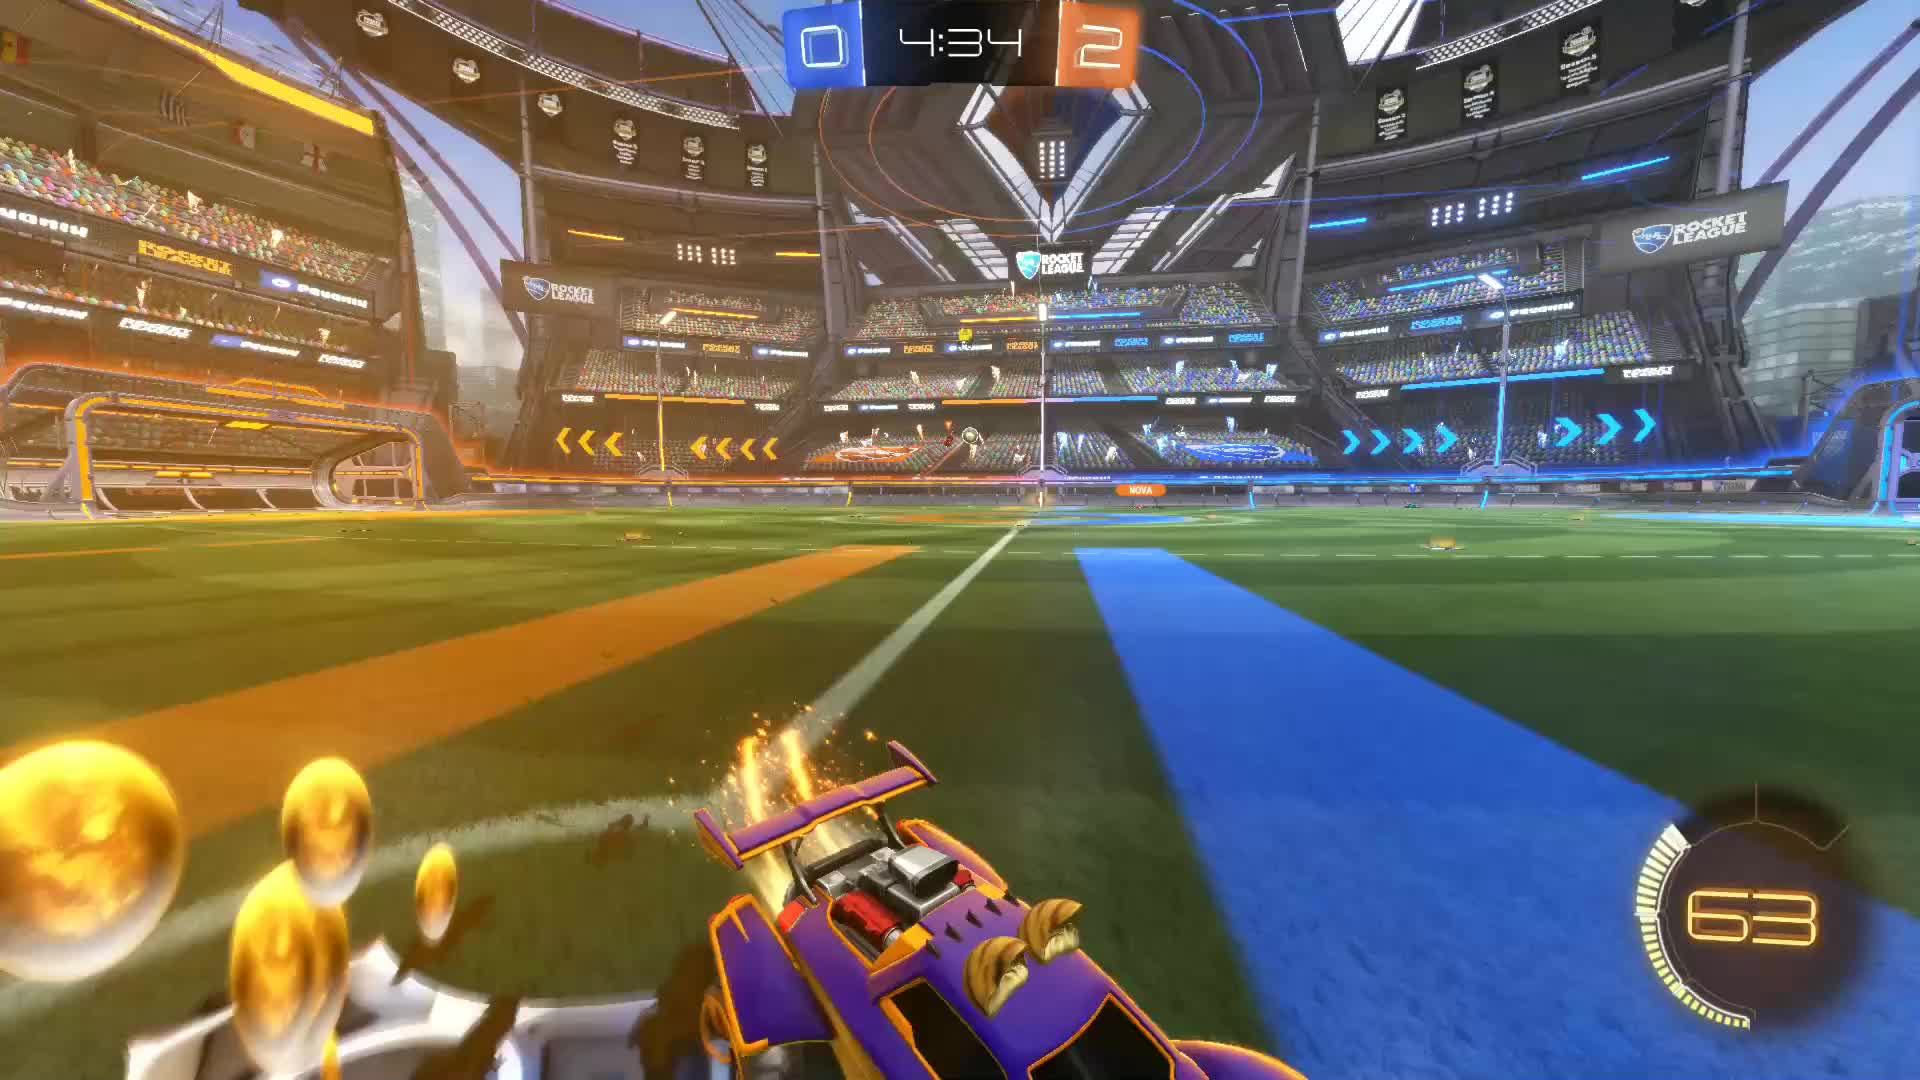 Gif Your Game, GifYourGame, Goal, Rocket League, RocketLeague, Spyro, Goal 3: Spyro GIFs